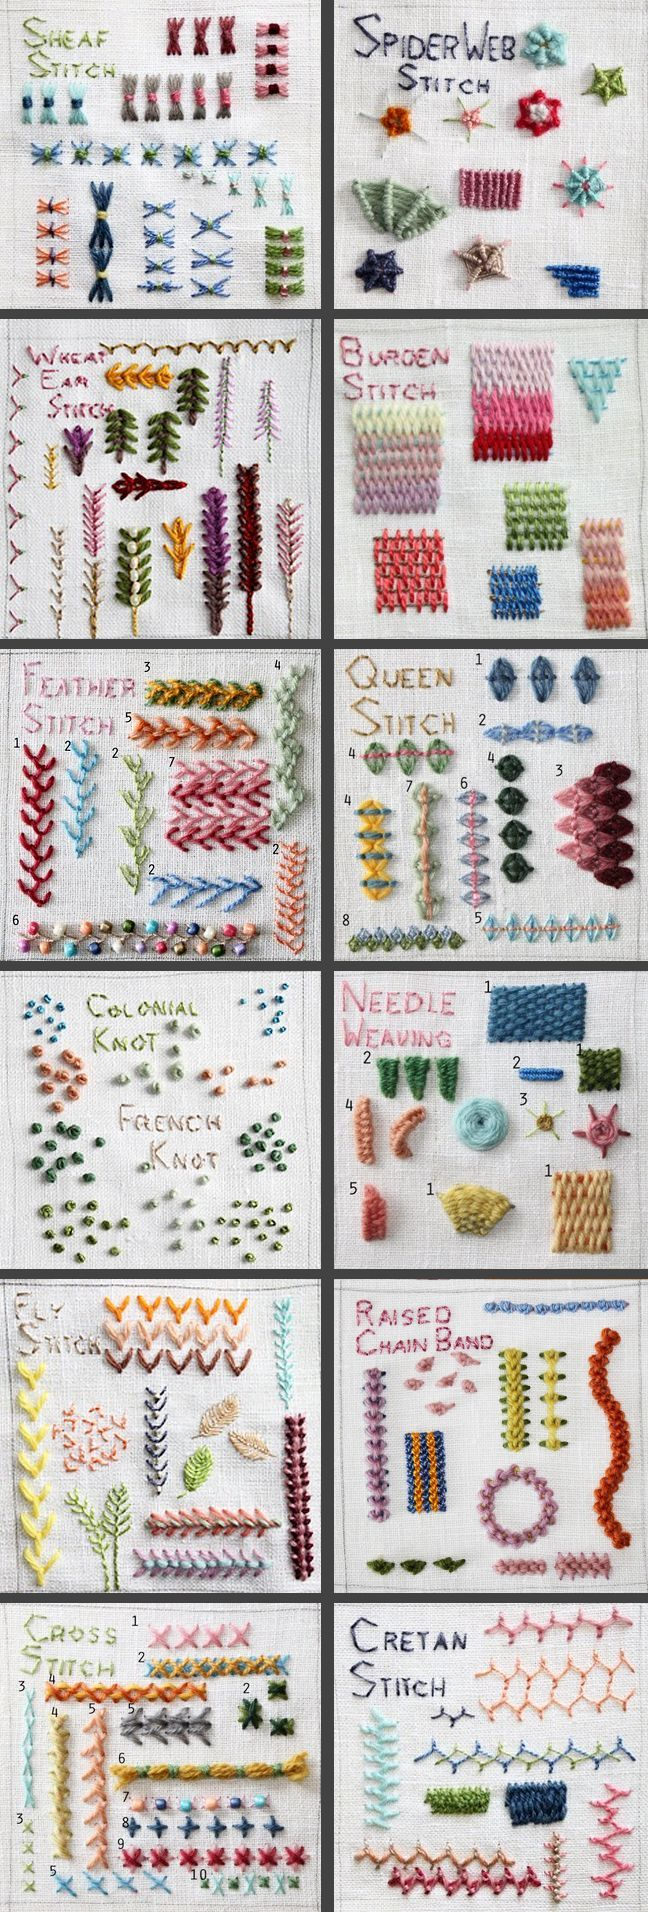 Different Types Hand Embroidery Stitches To Diy Pinterest